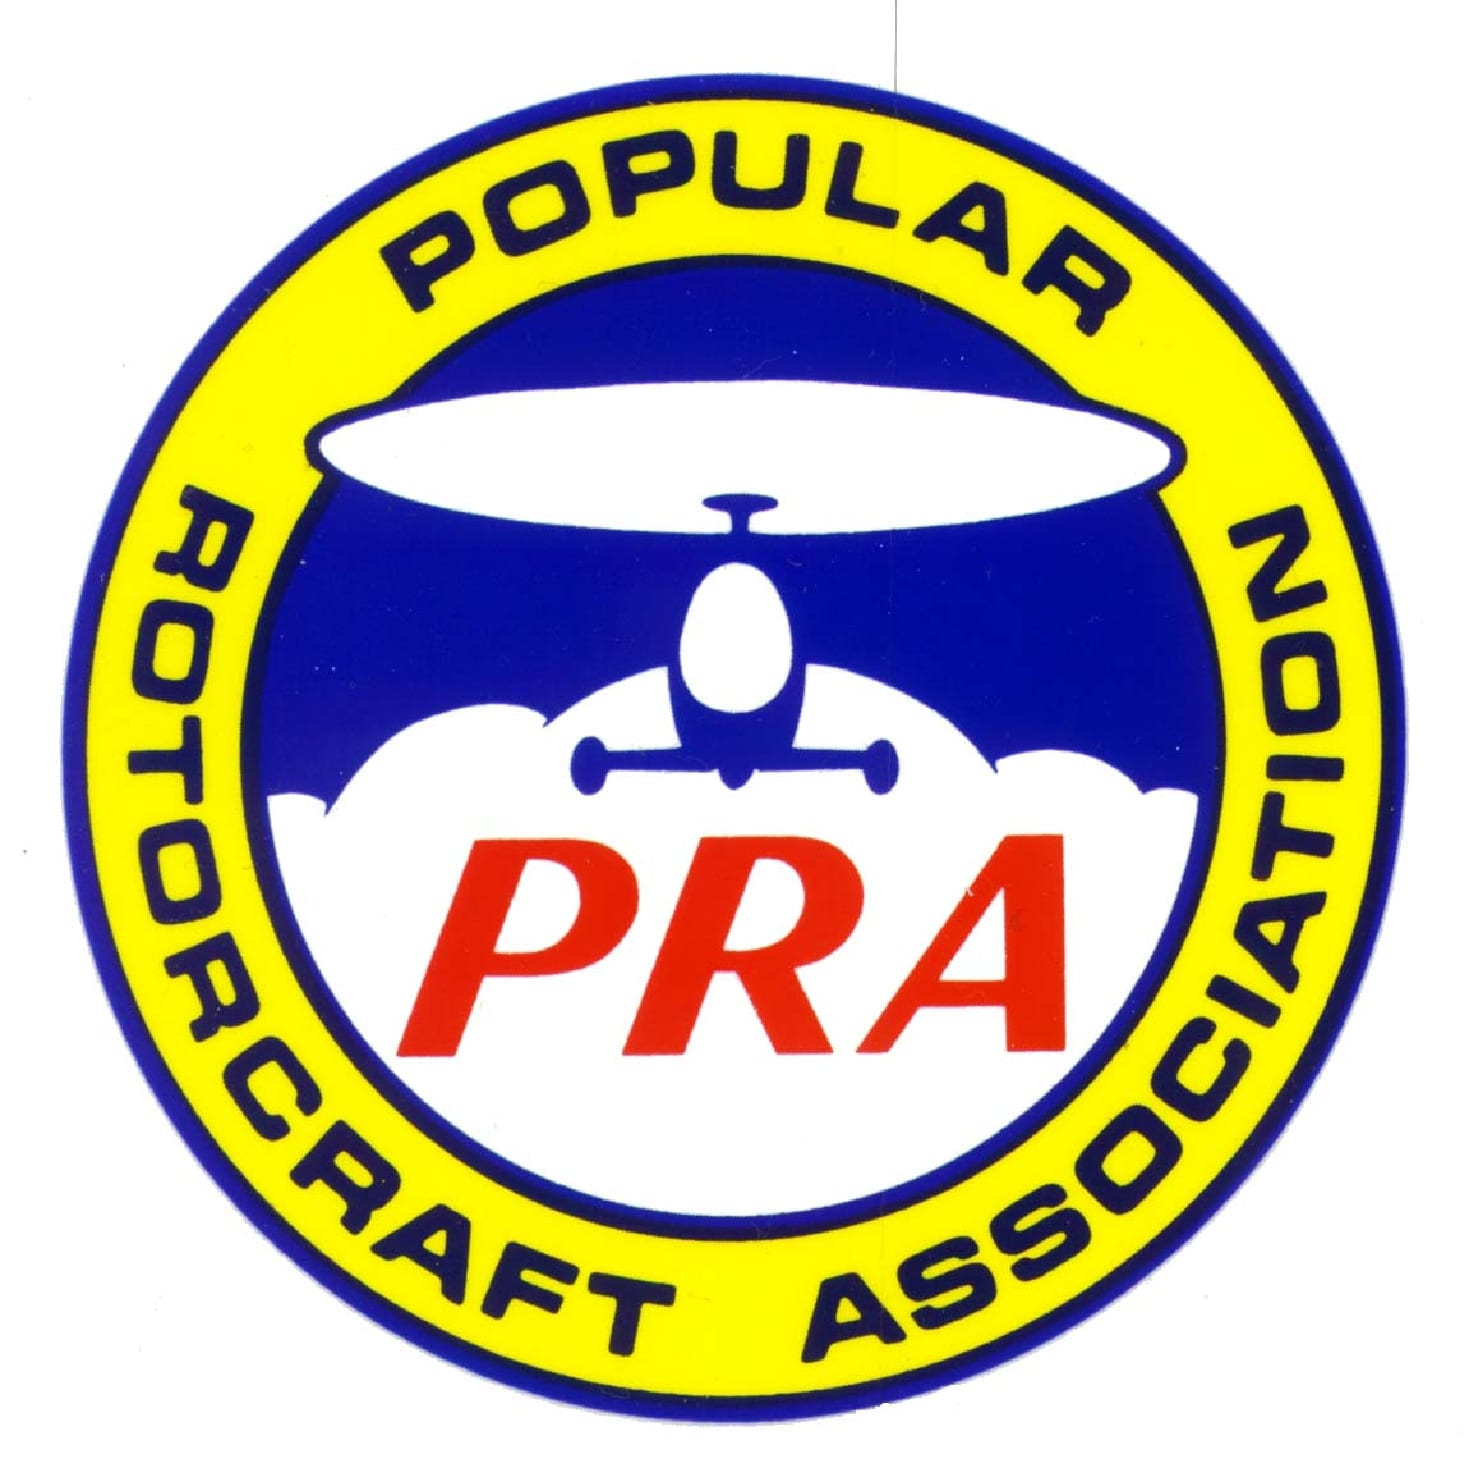 WINGS seminar set for PRA 50th anniversary fly-in